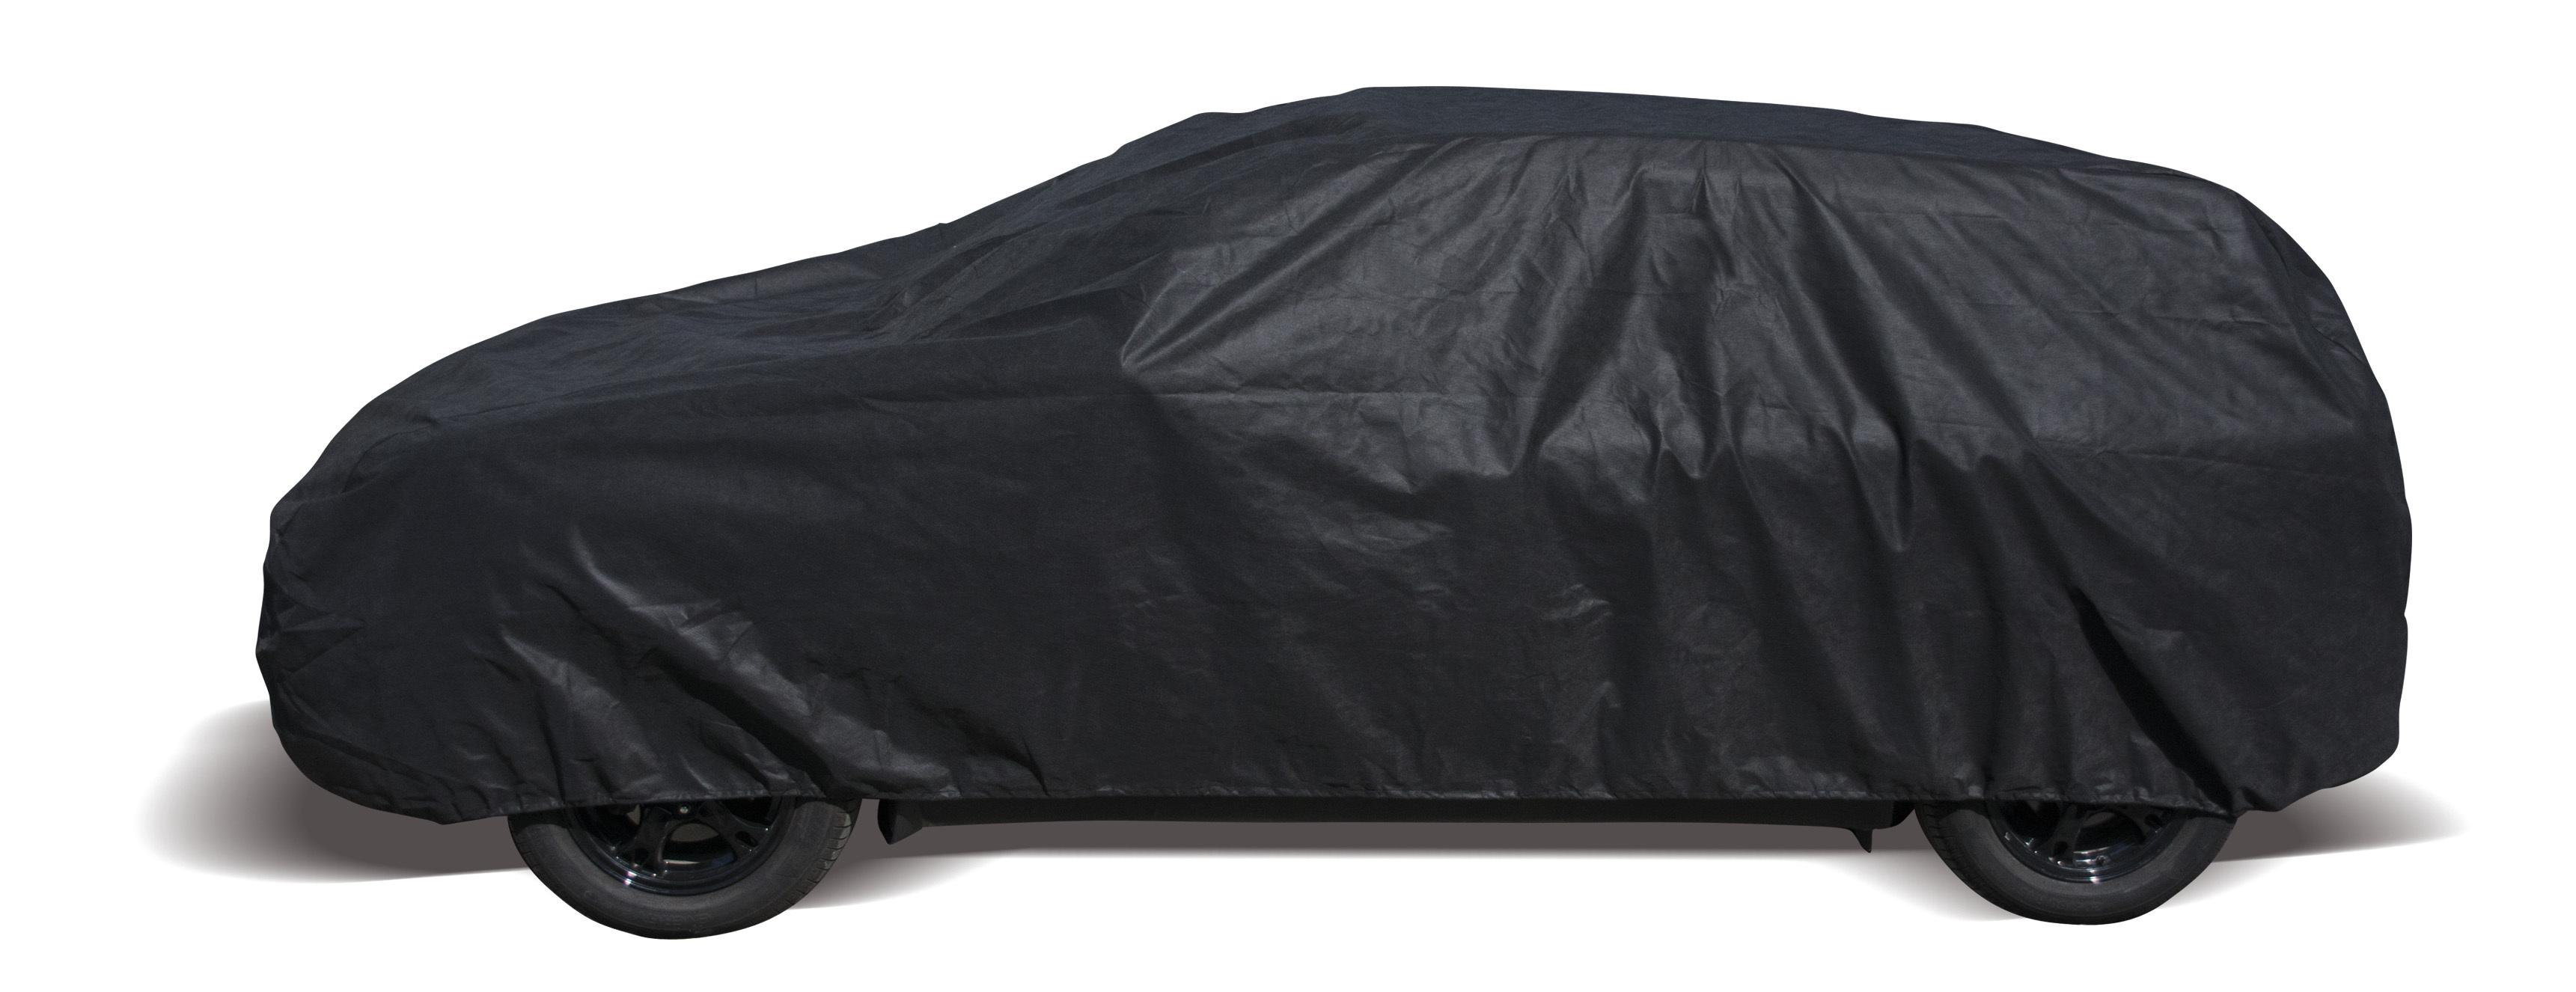 Car cover CARPASSION 10022 rating